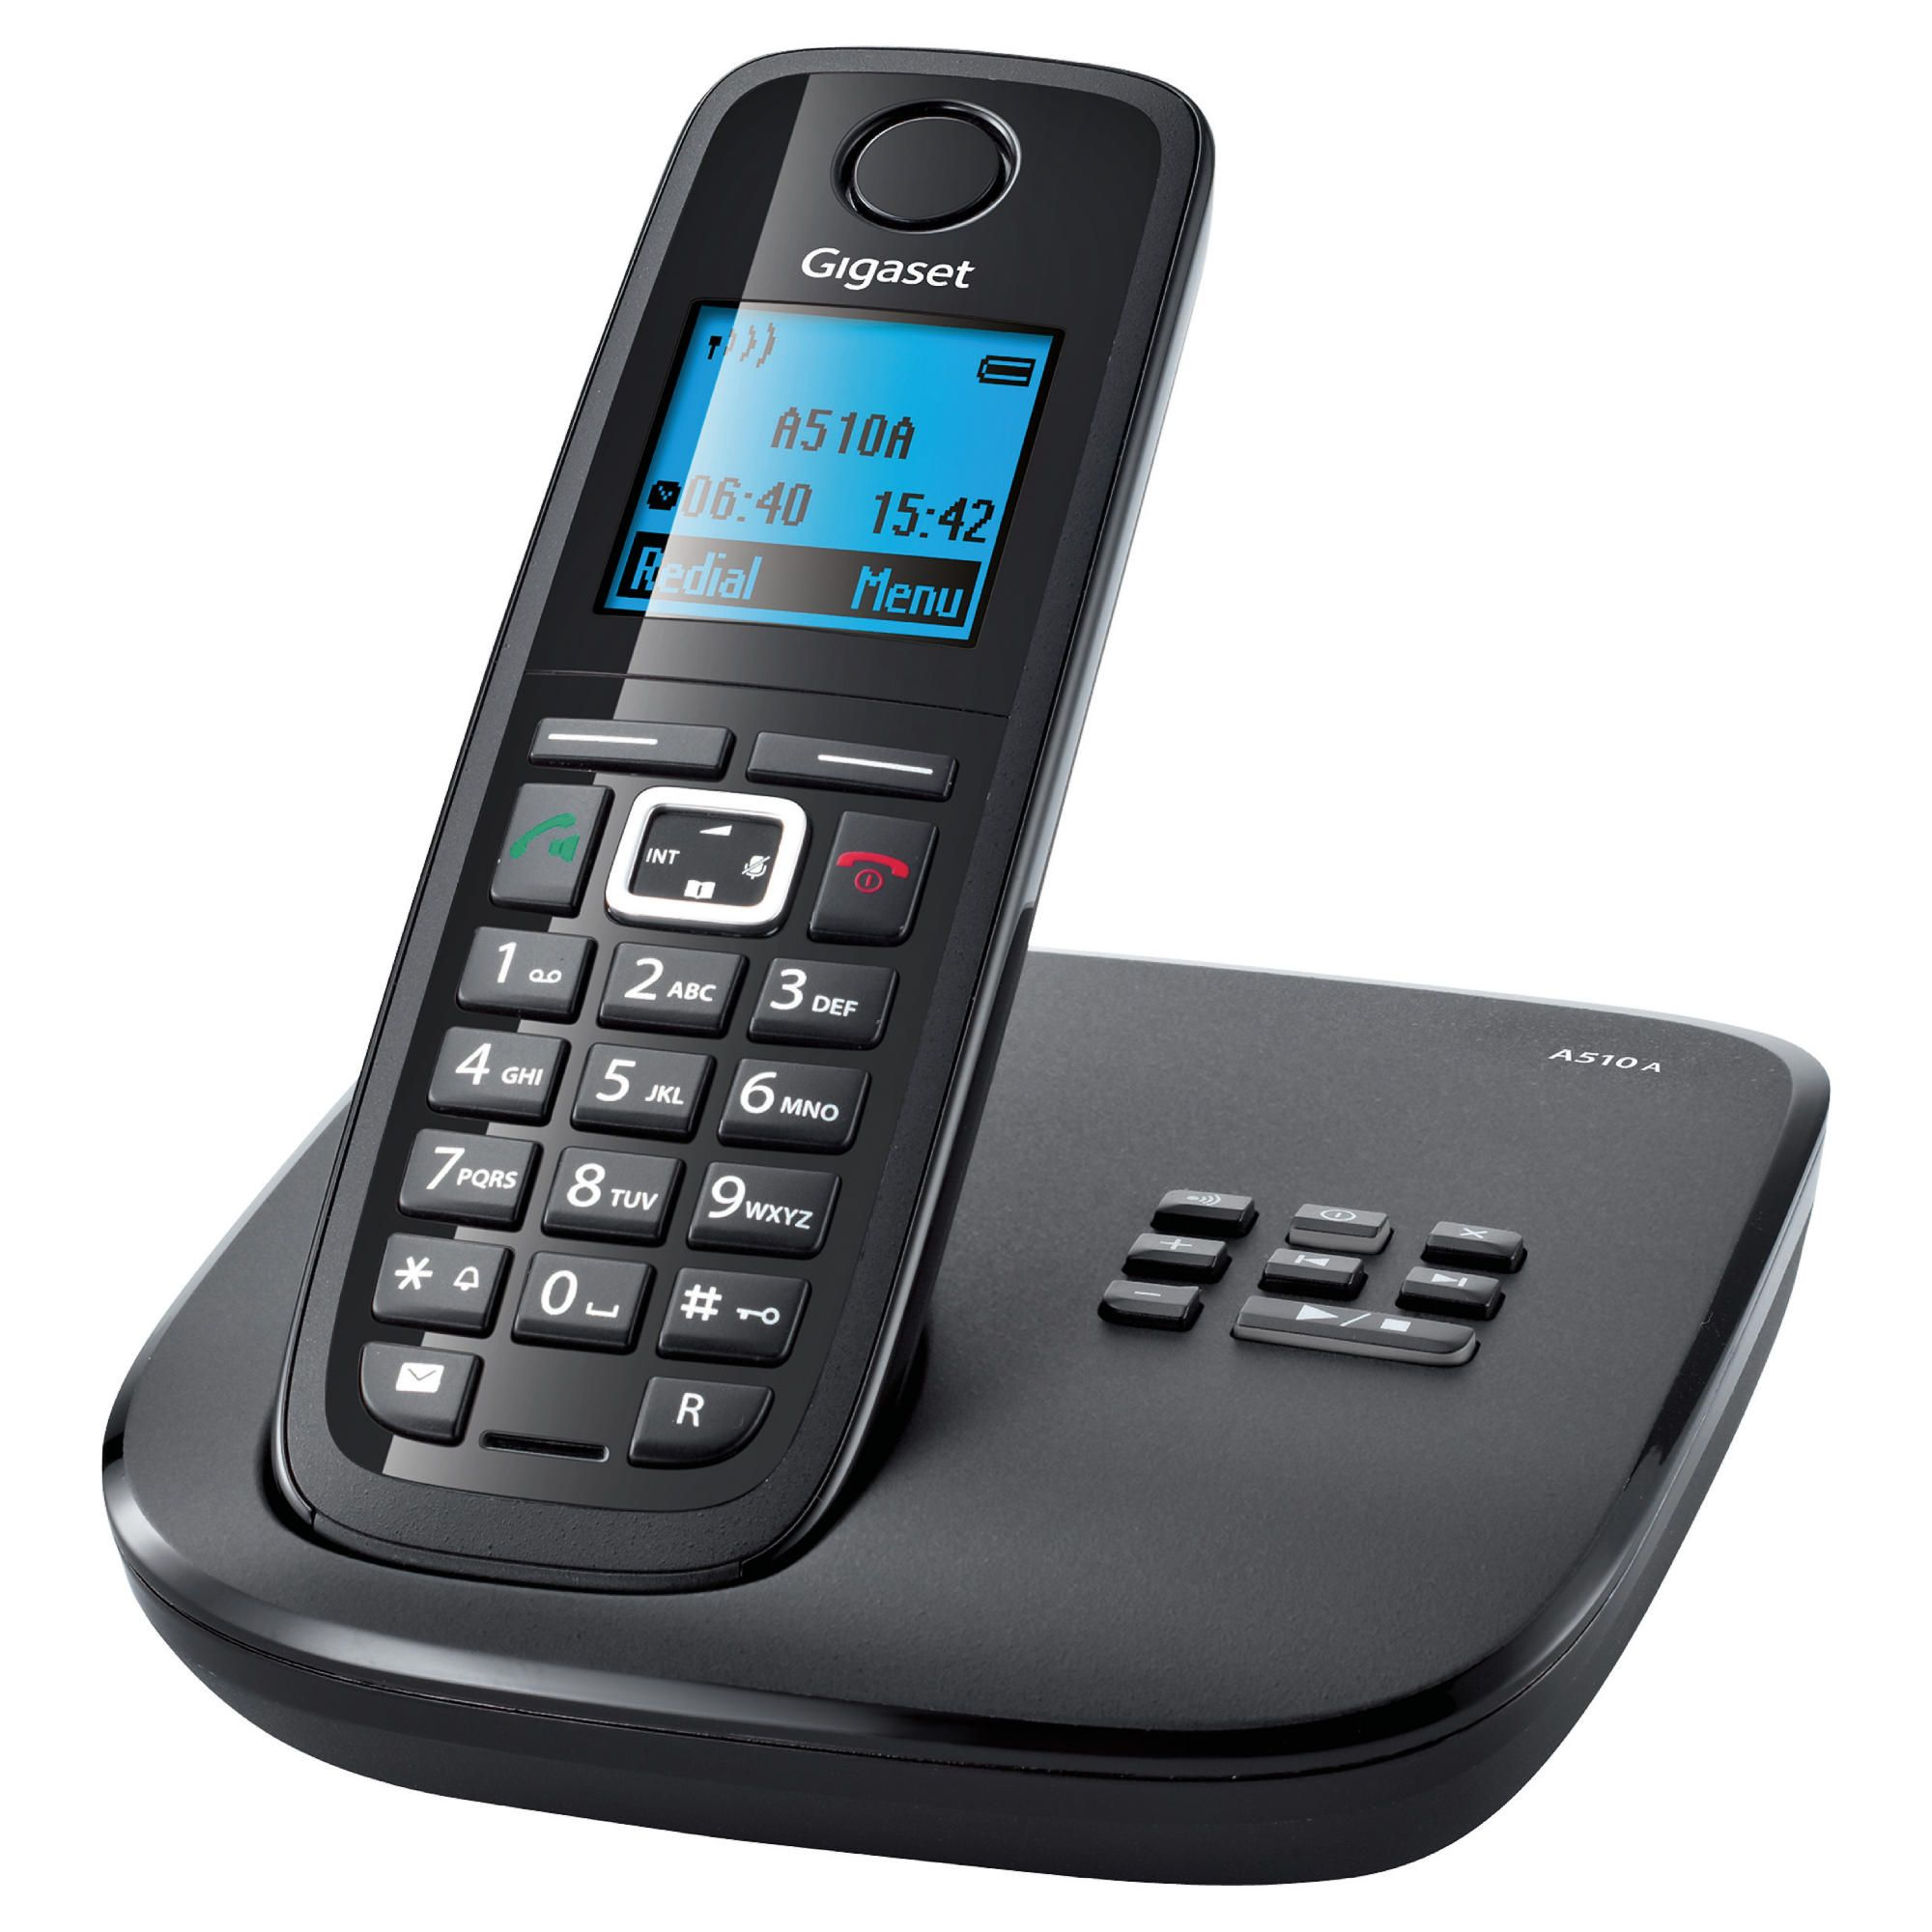 gigaset al410 a cordless phone with answering machine. Black Bedroom Furniture Sets. Home Design Ideas